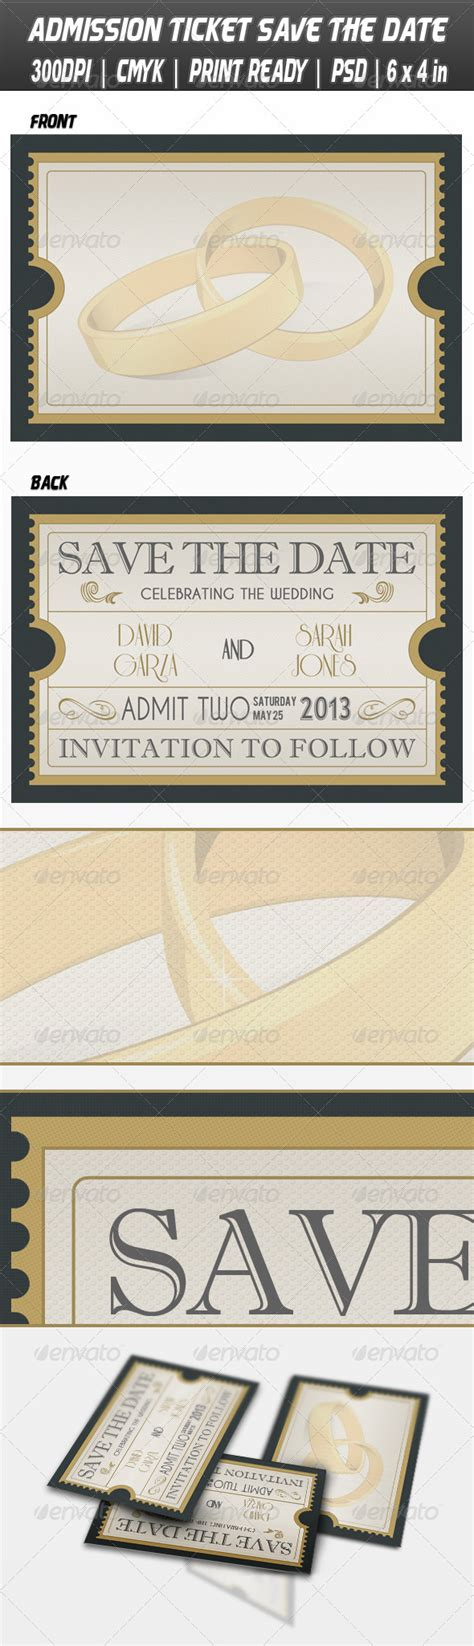 movie ticket free save the date templates 187 dondrup com